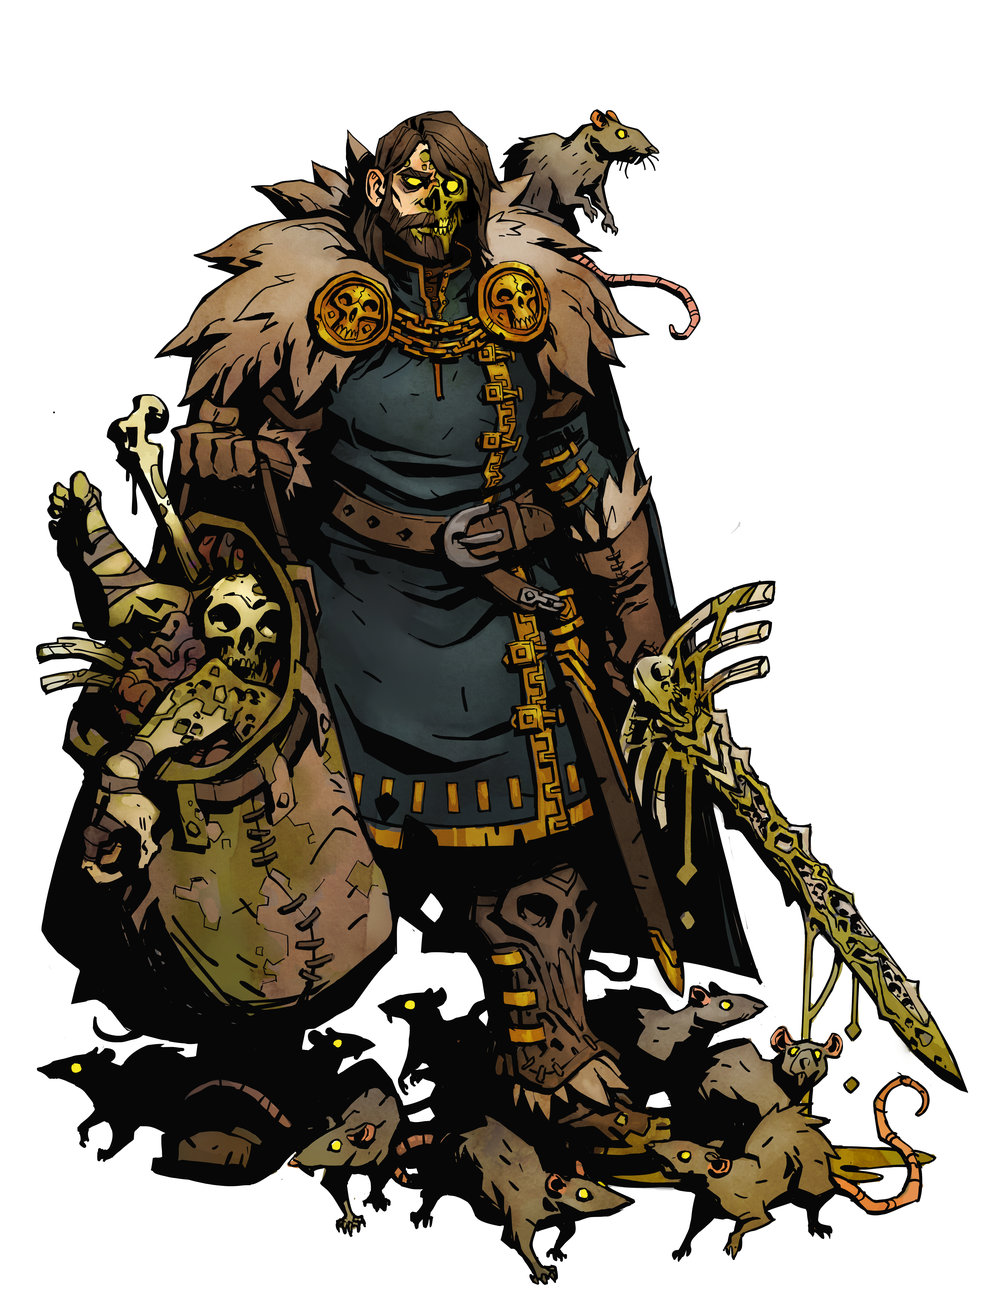 PLAGUE BARON FAQ - Q: Can I stack multiple Corpse Pox Tiles on 1 space?A: No. Only 1 Corpse Pox tile can be on 1 space. A Ghost Knight and/or Flames can also occupy the space, however. Don't get knocked onto that space, yeesh.